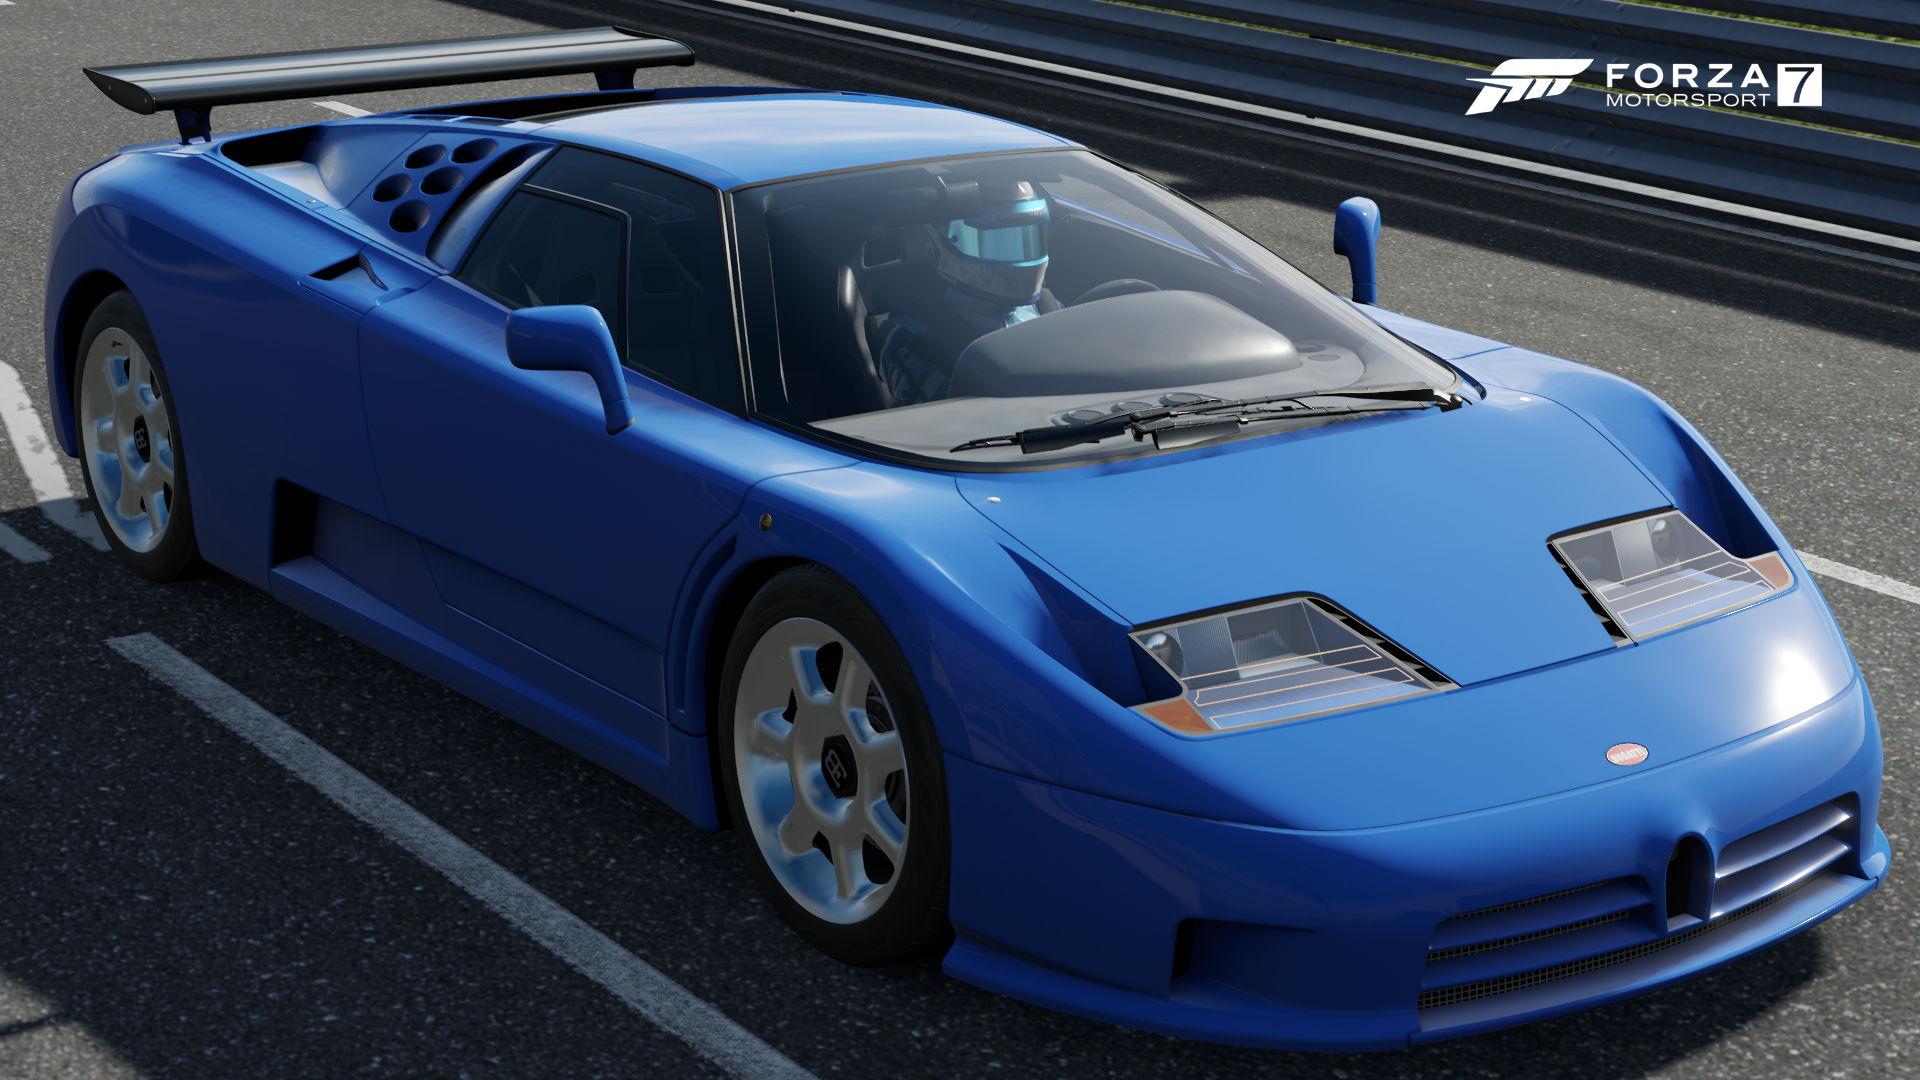 Bugatti EB110 Super Sport | Forza Motorsport Wiki | FANDOM powered ...